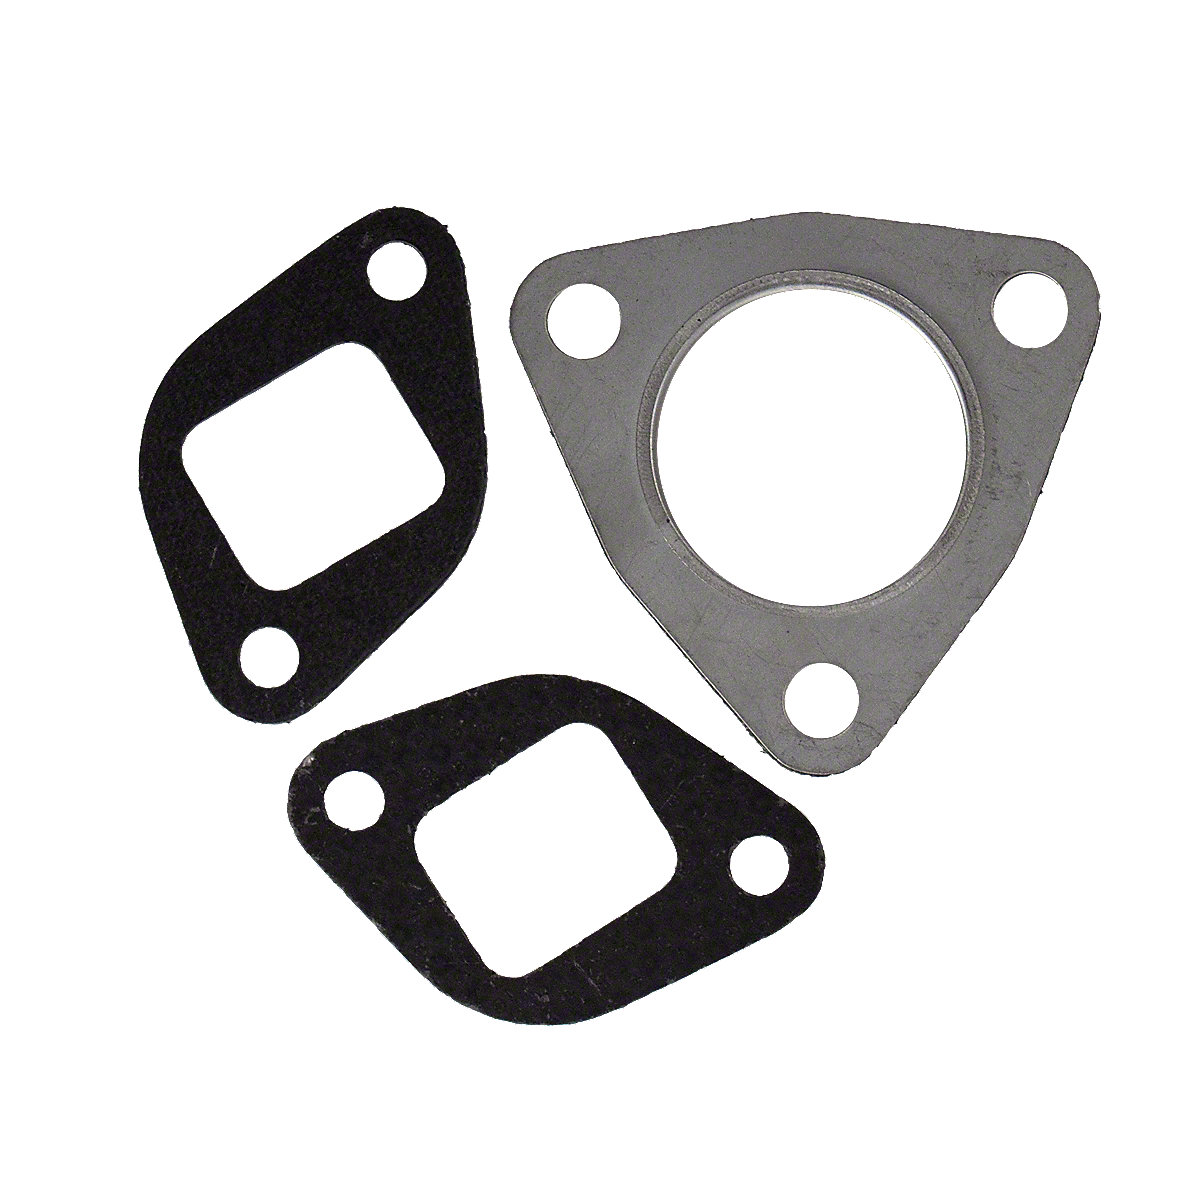 Exhaust Manifold Gasket For Massey Ferguson: 135.